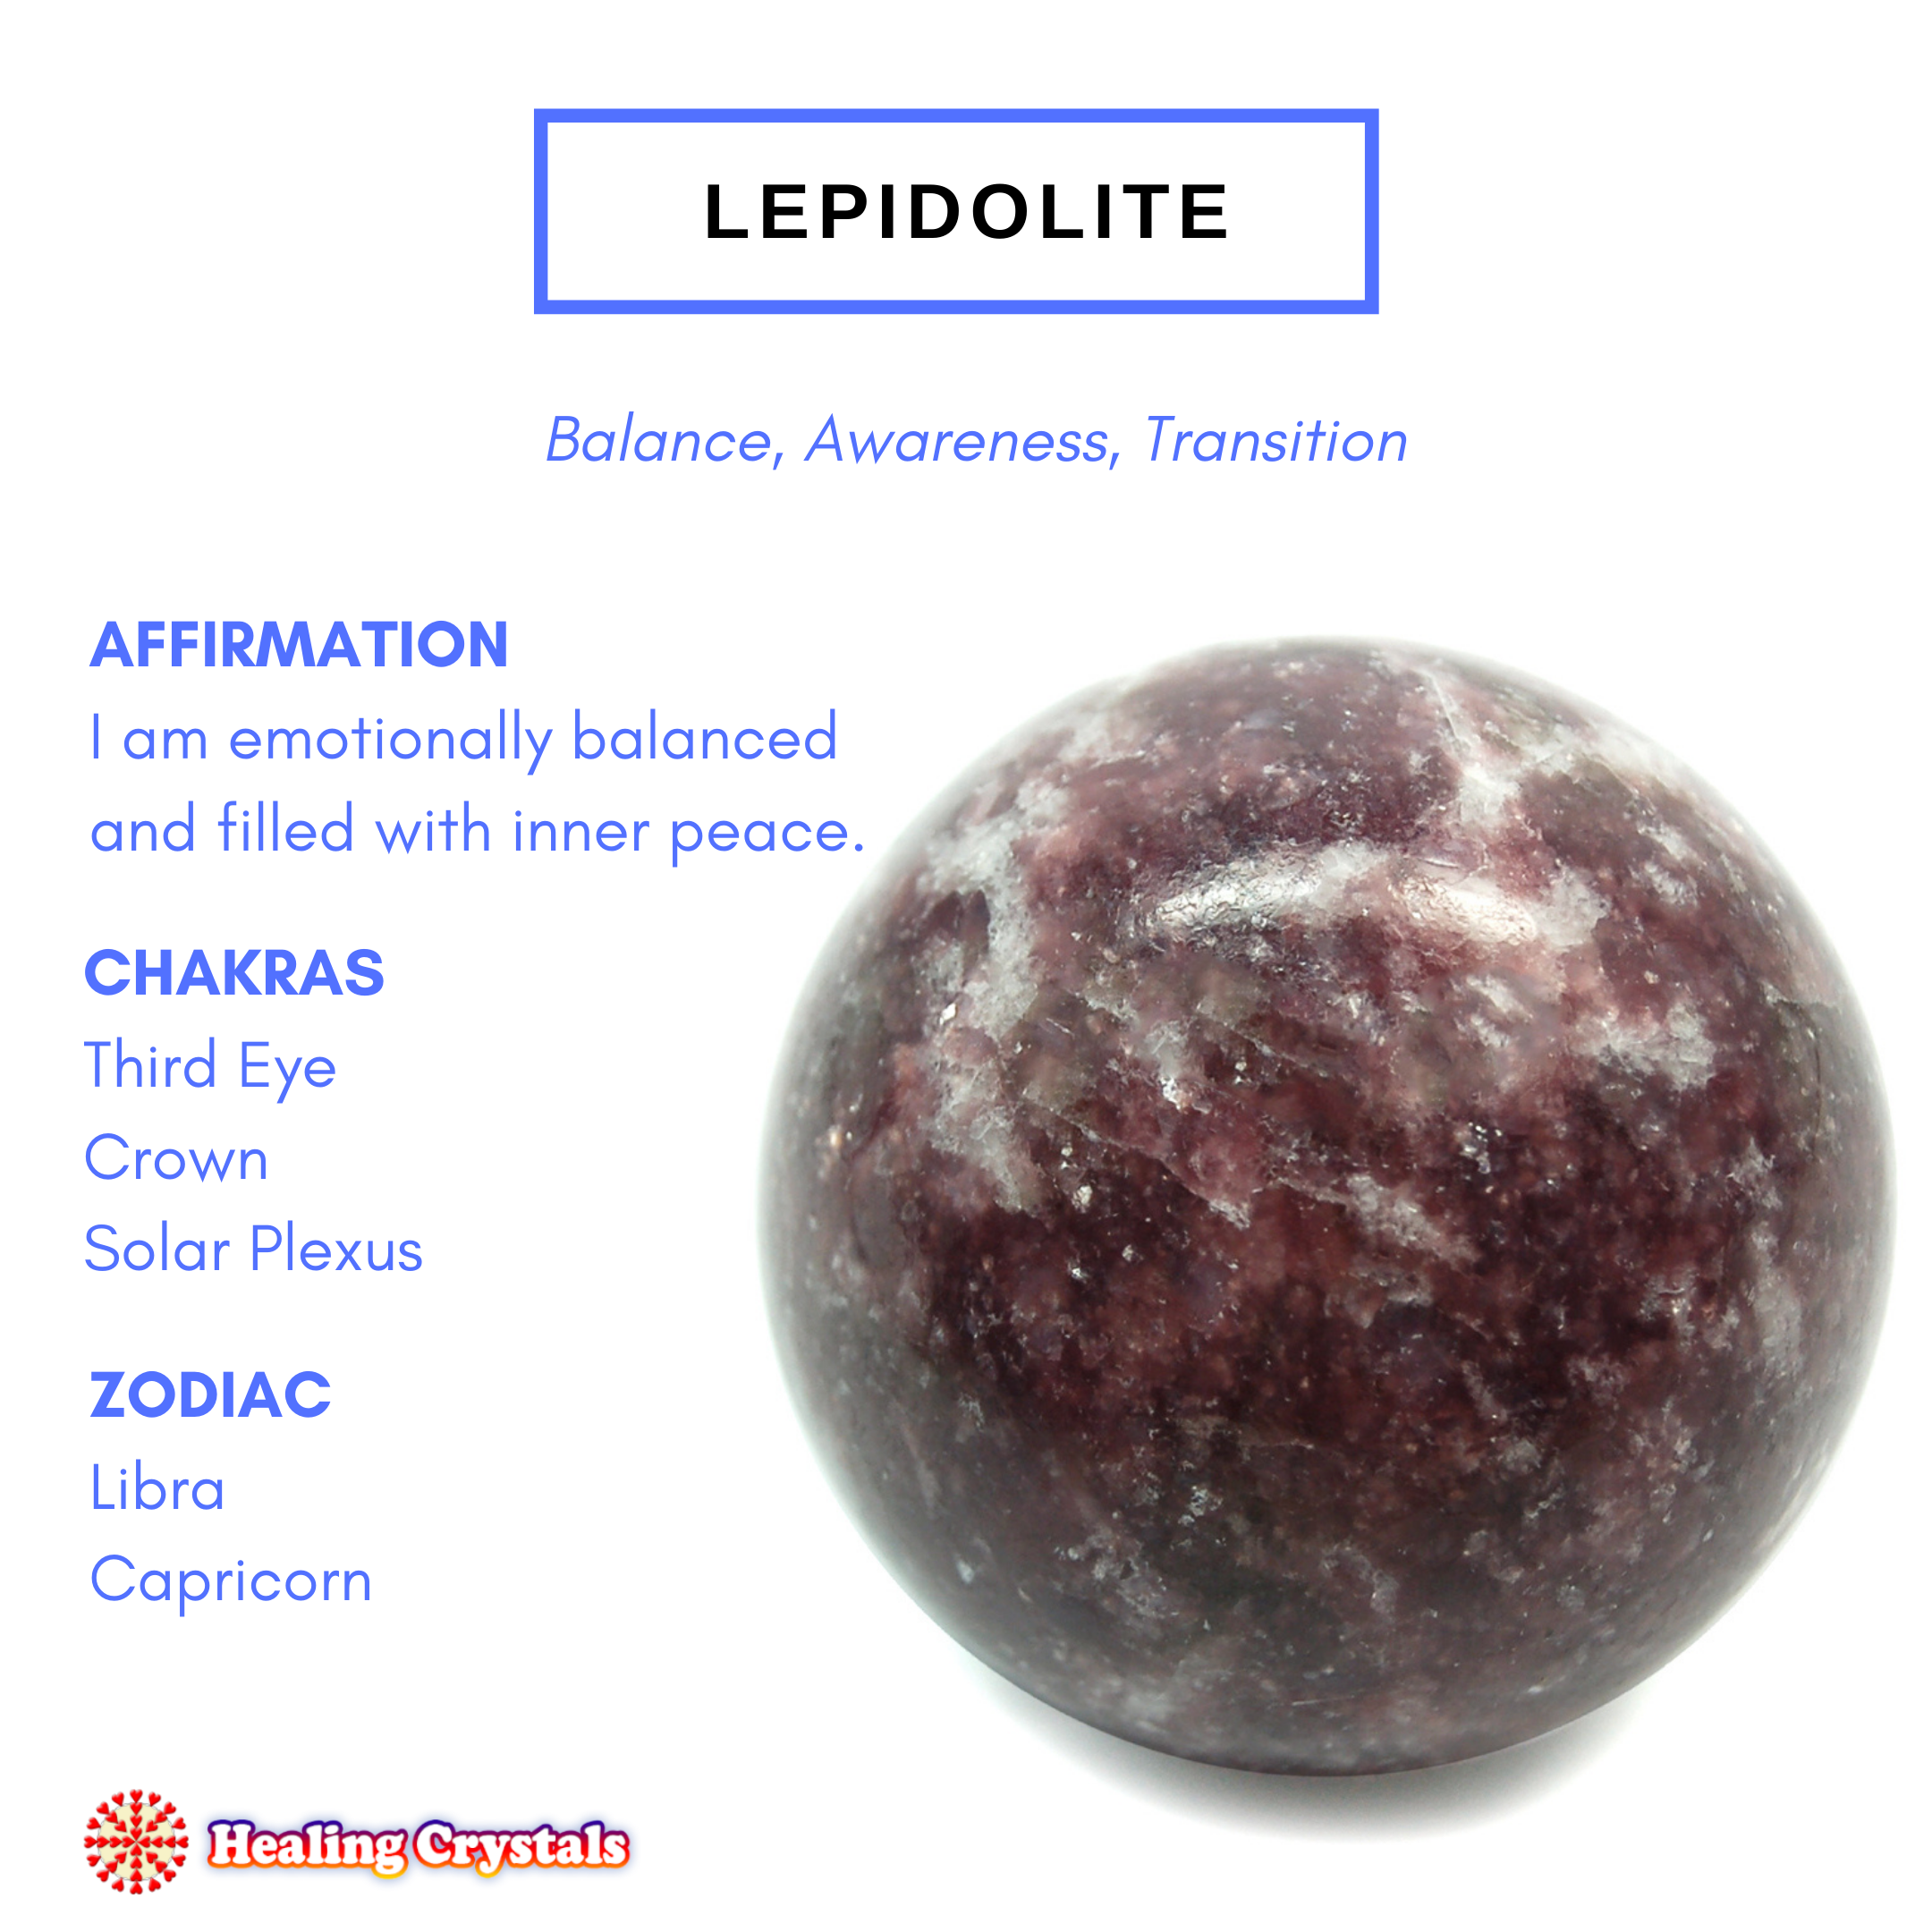 Crystal of the Month - Lepidolite